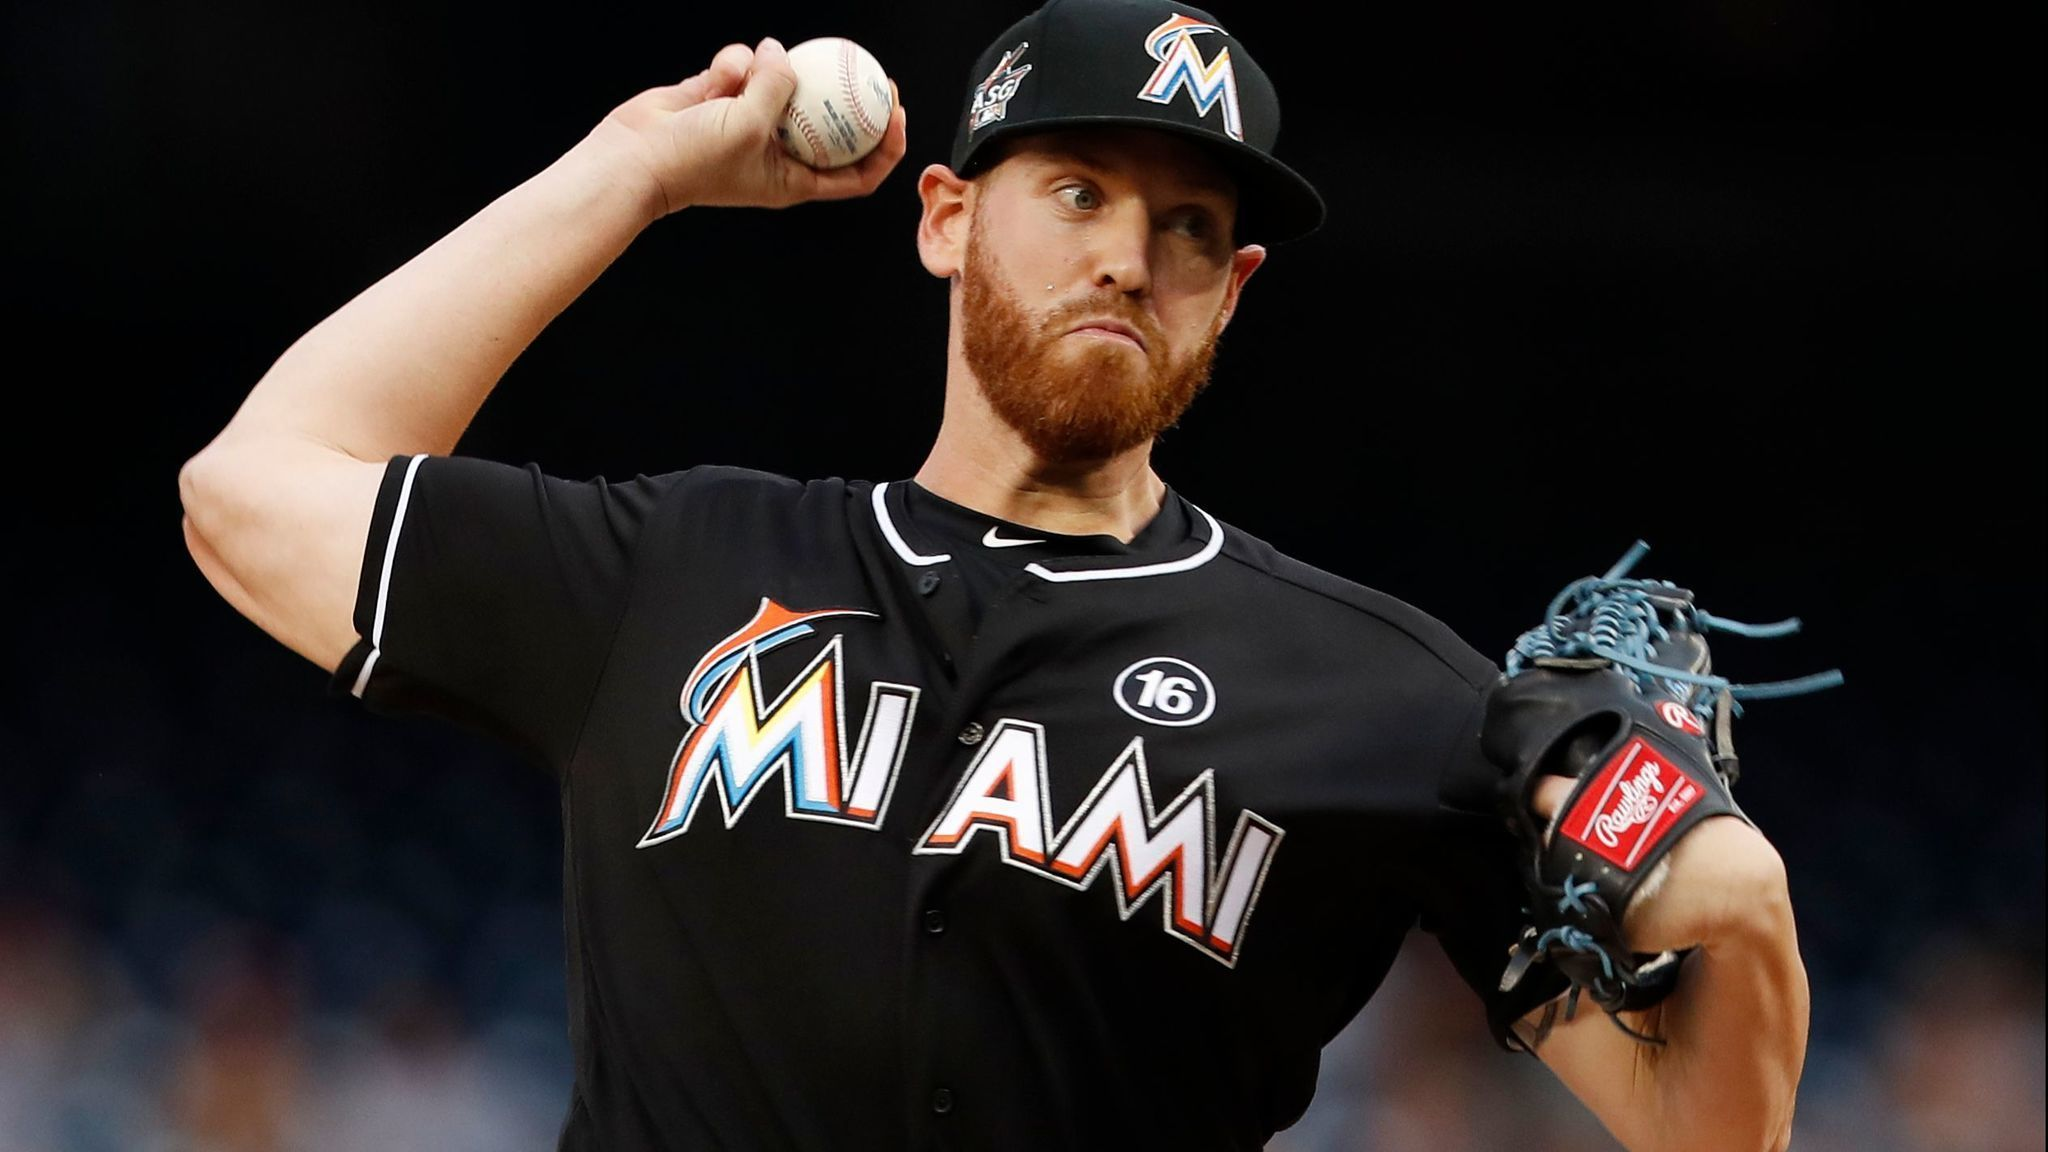 Fl-sp-marlins-box-for-tues-20170821